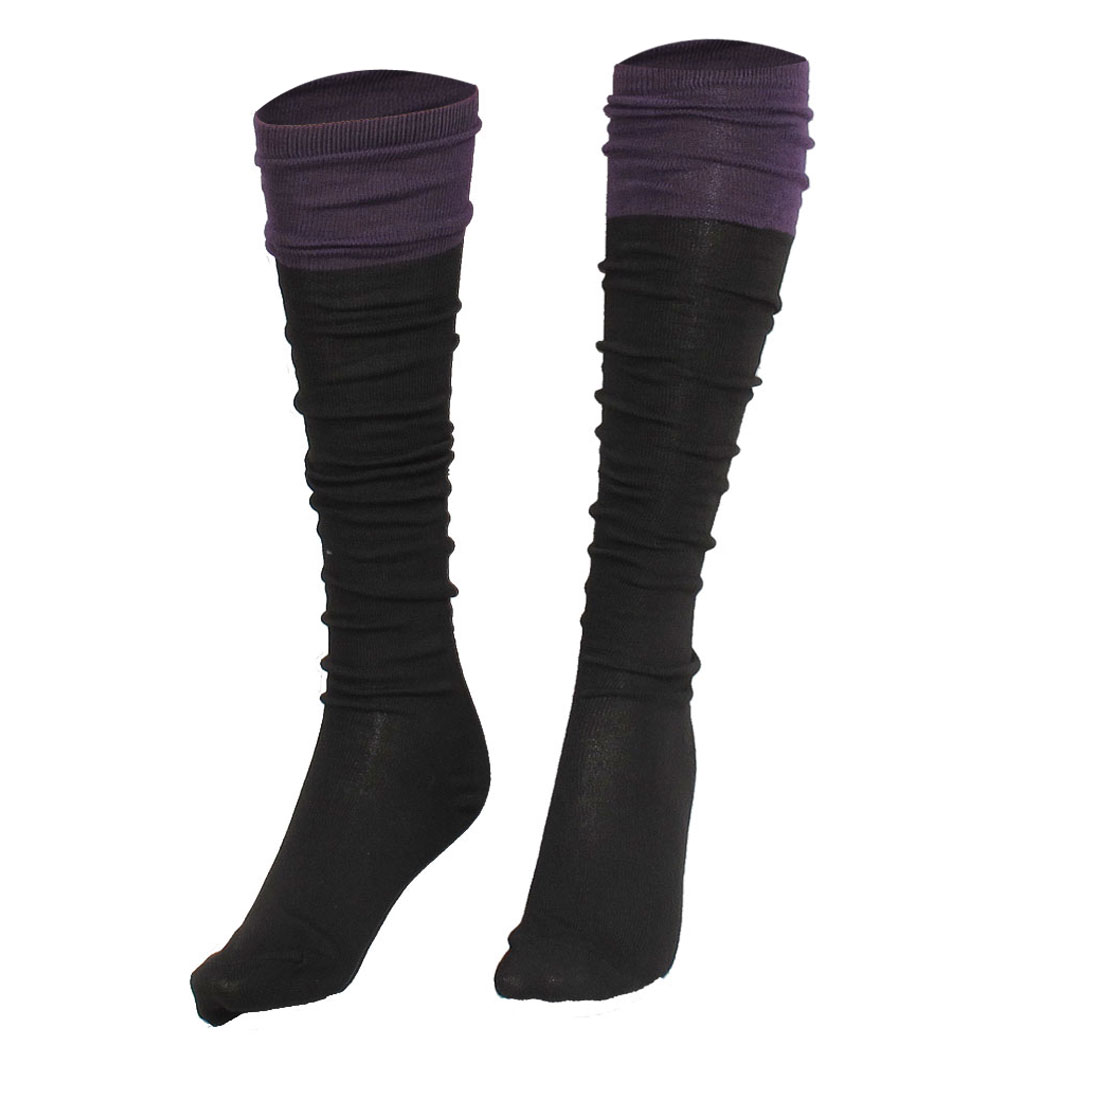 Dark Purple Color Contrast Stretchy Fleece Socks Stockings for Ladies